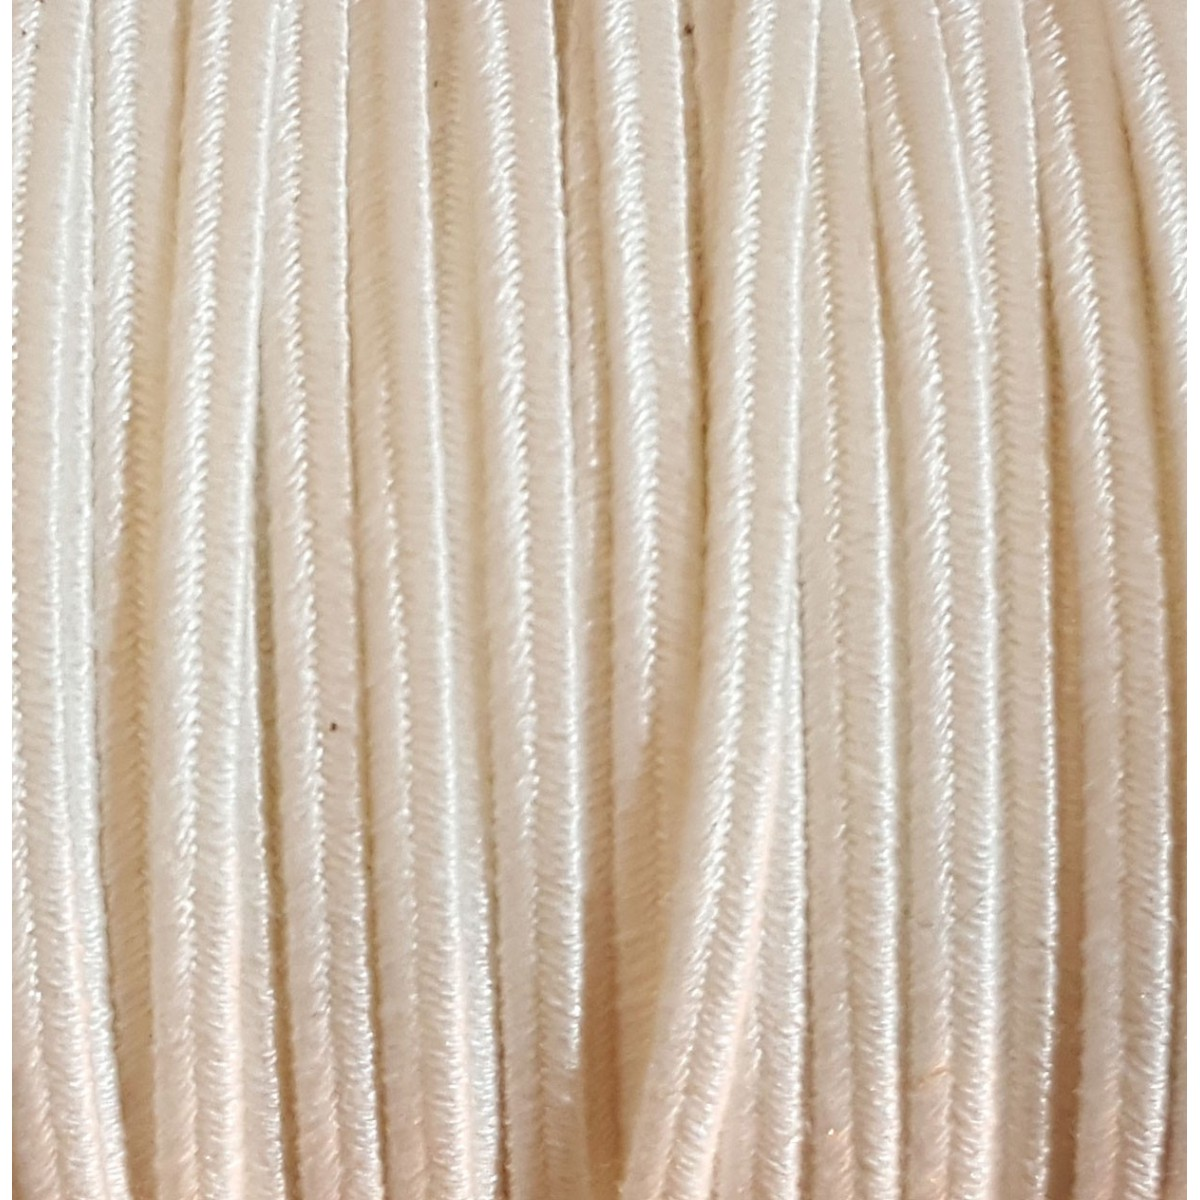 Soutache Cotton Bianco mm 4,0 x 3mt